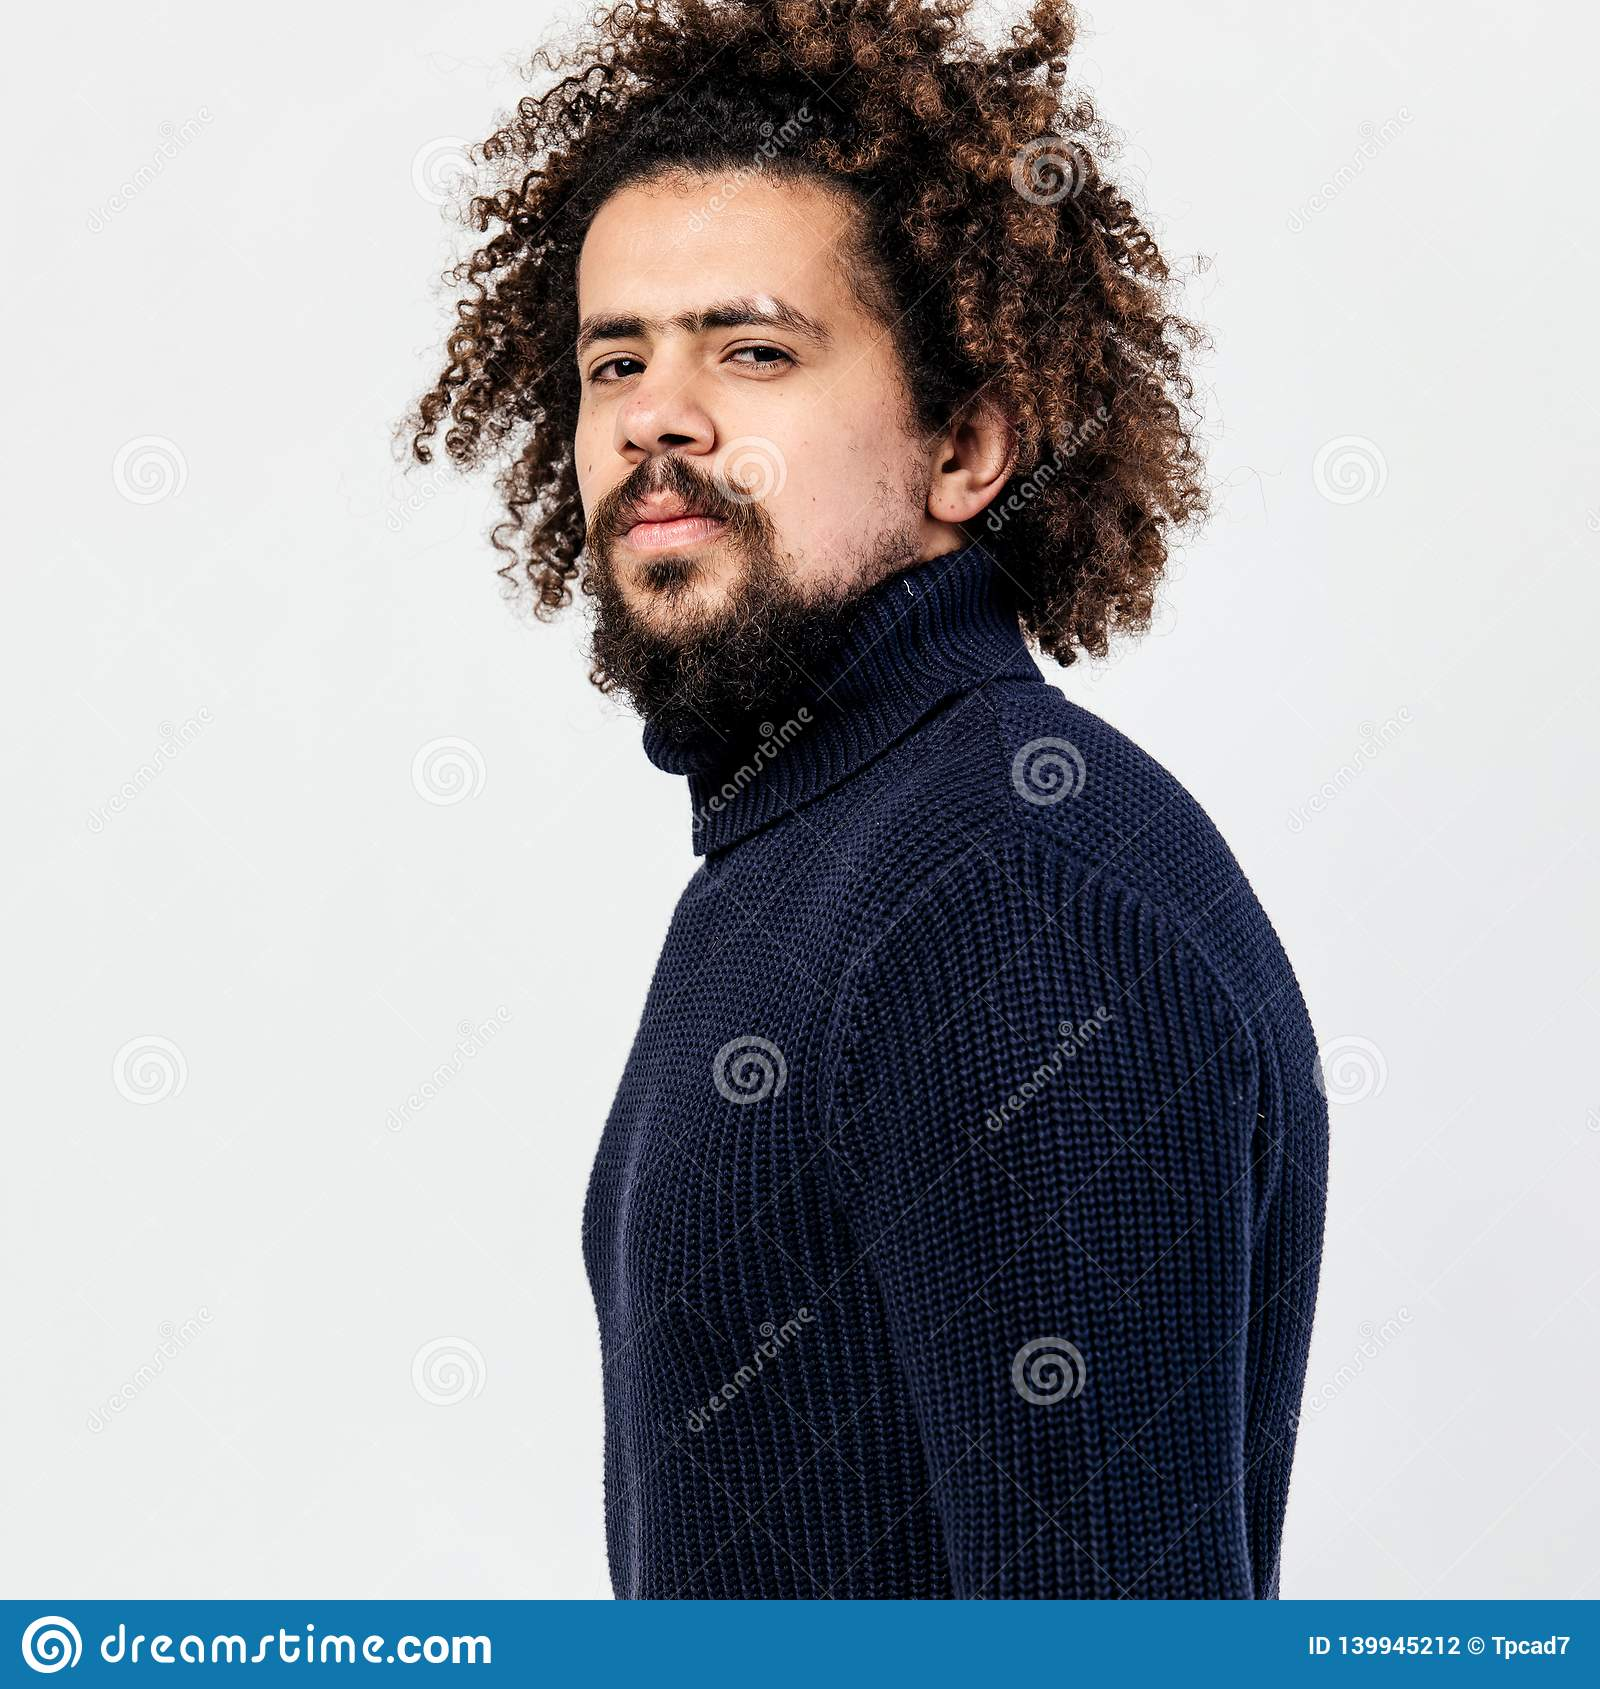 Dark-haired curly guy with a beard dressed in a black knitted turtleneck poses in the studio on the white background.